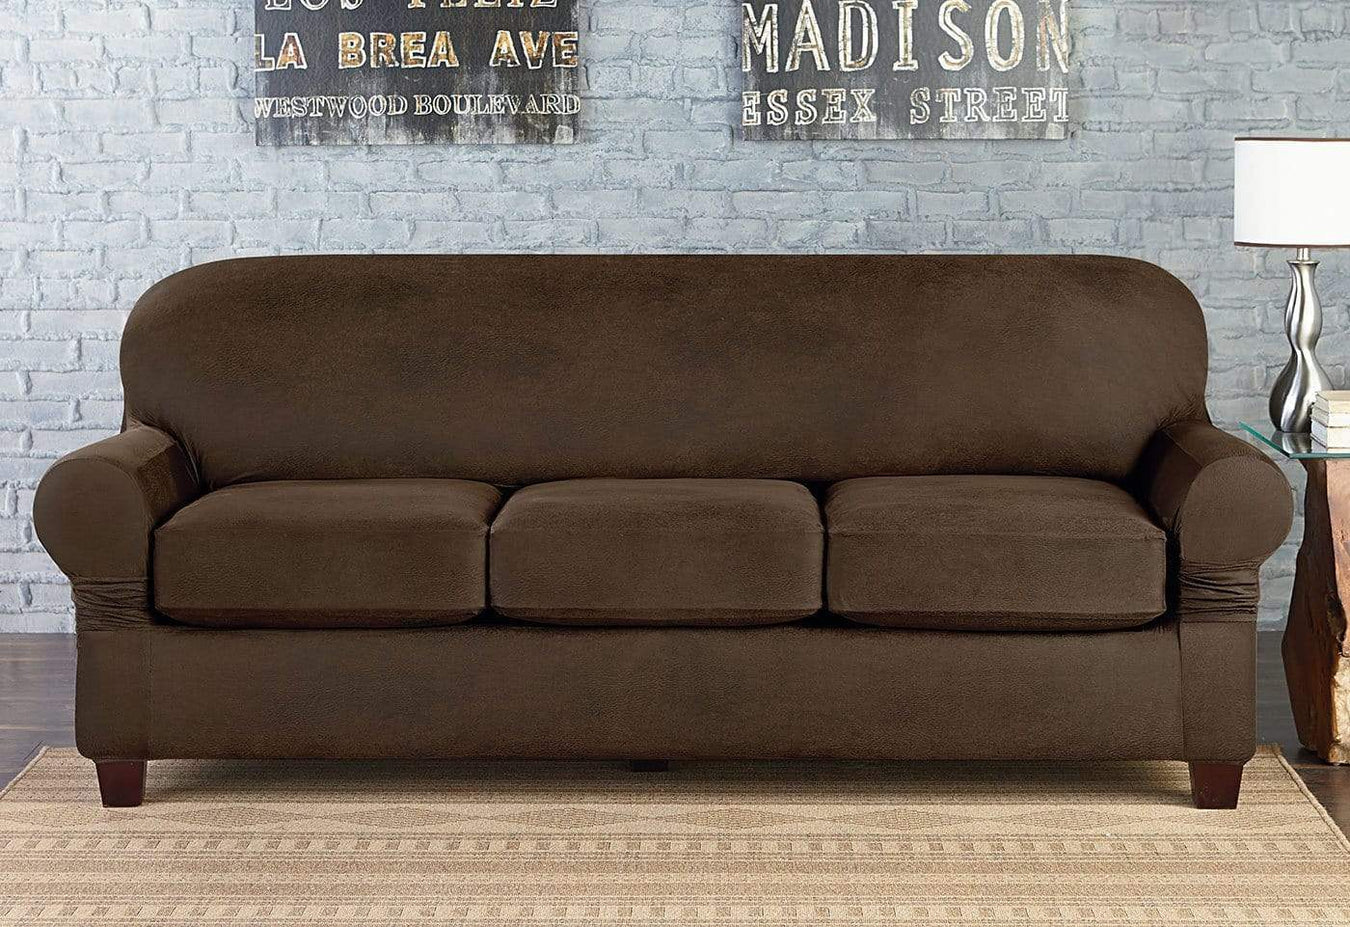 Vintage Leather Four Piece Sofa Slipcover | Universal Box ...